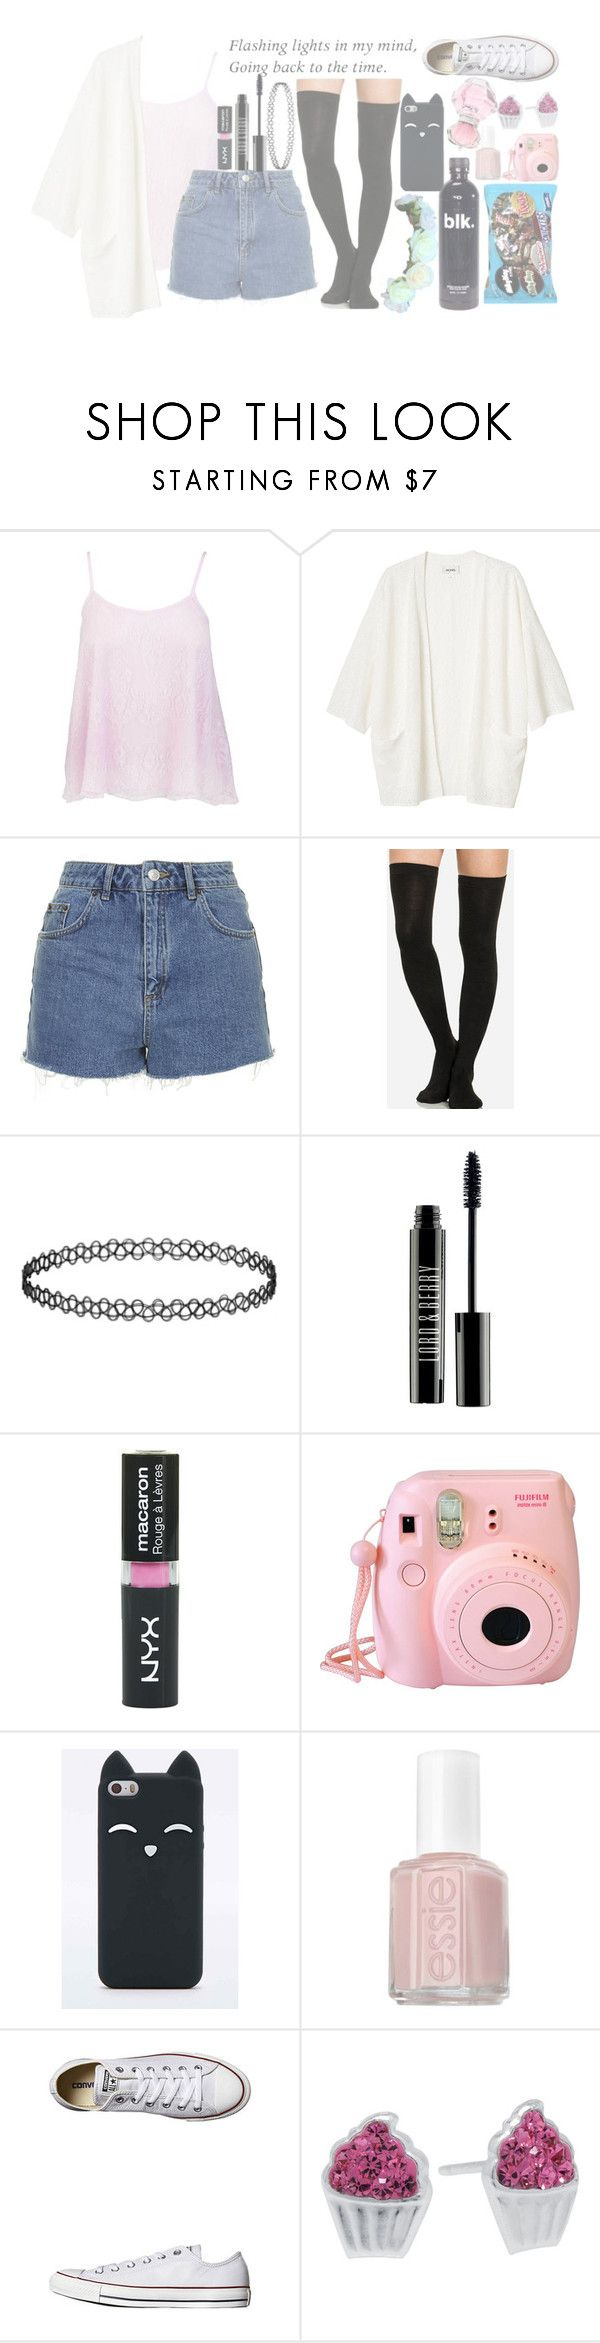 """requested c: (pastel goth)"" by rosita562 ❤ liked on Polyvore featuring Monki, Topshop, Lord & Berry, Fujifilm, Essie, Converse and Silver Treasures"